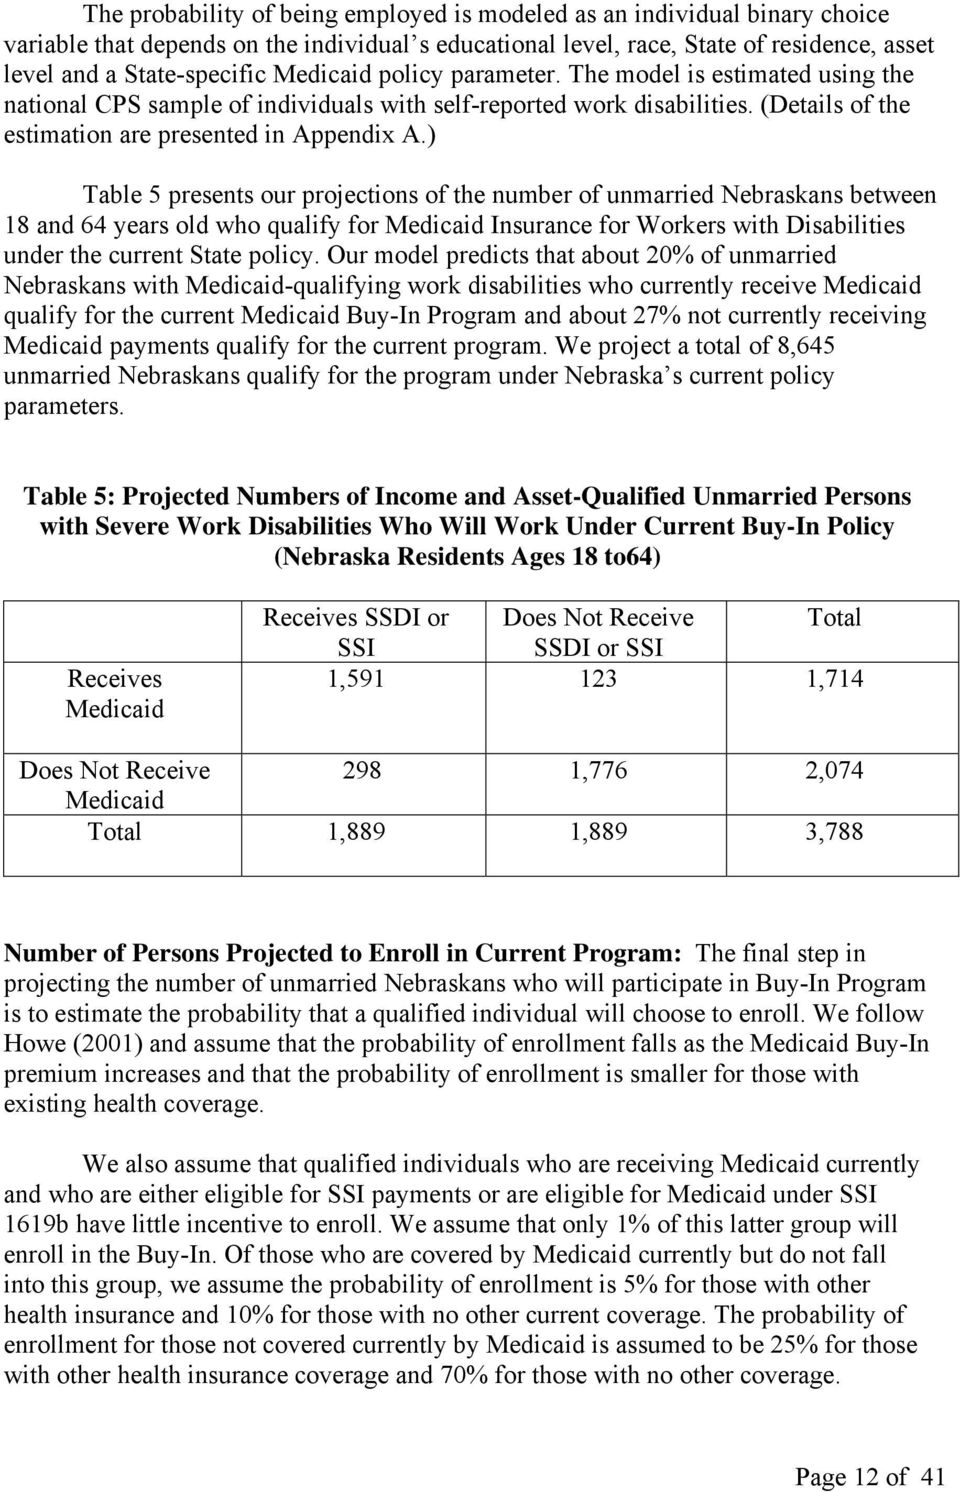 ) Table 5 presents our projections of the number of unmarried Nebraskans between 18 and 64 years old who qualify for Medicaid Insurance for Workers with Disabilities under the current State policy.